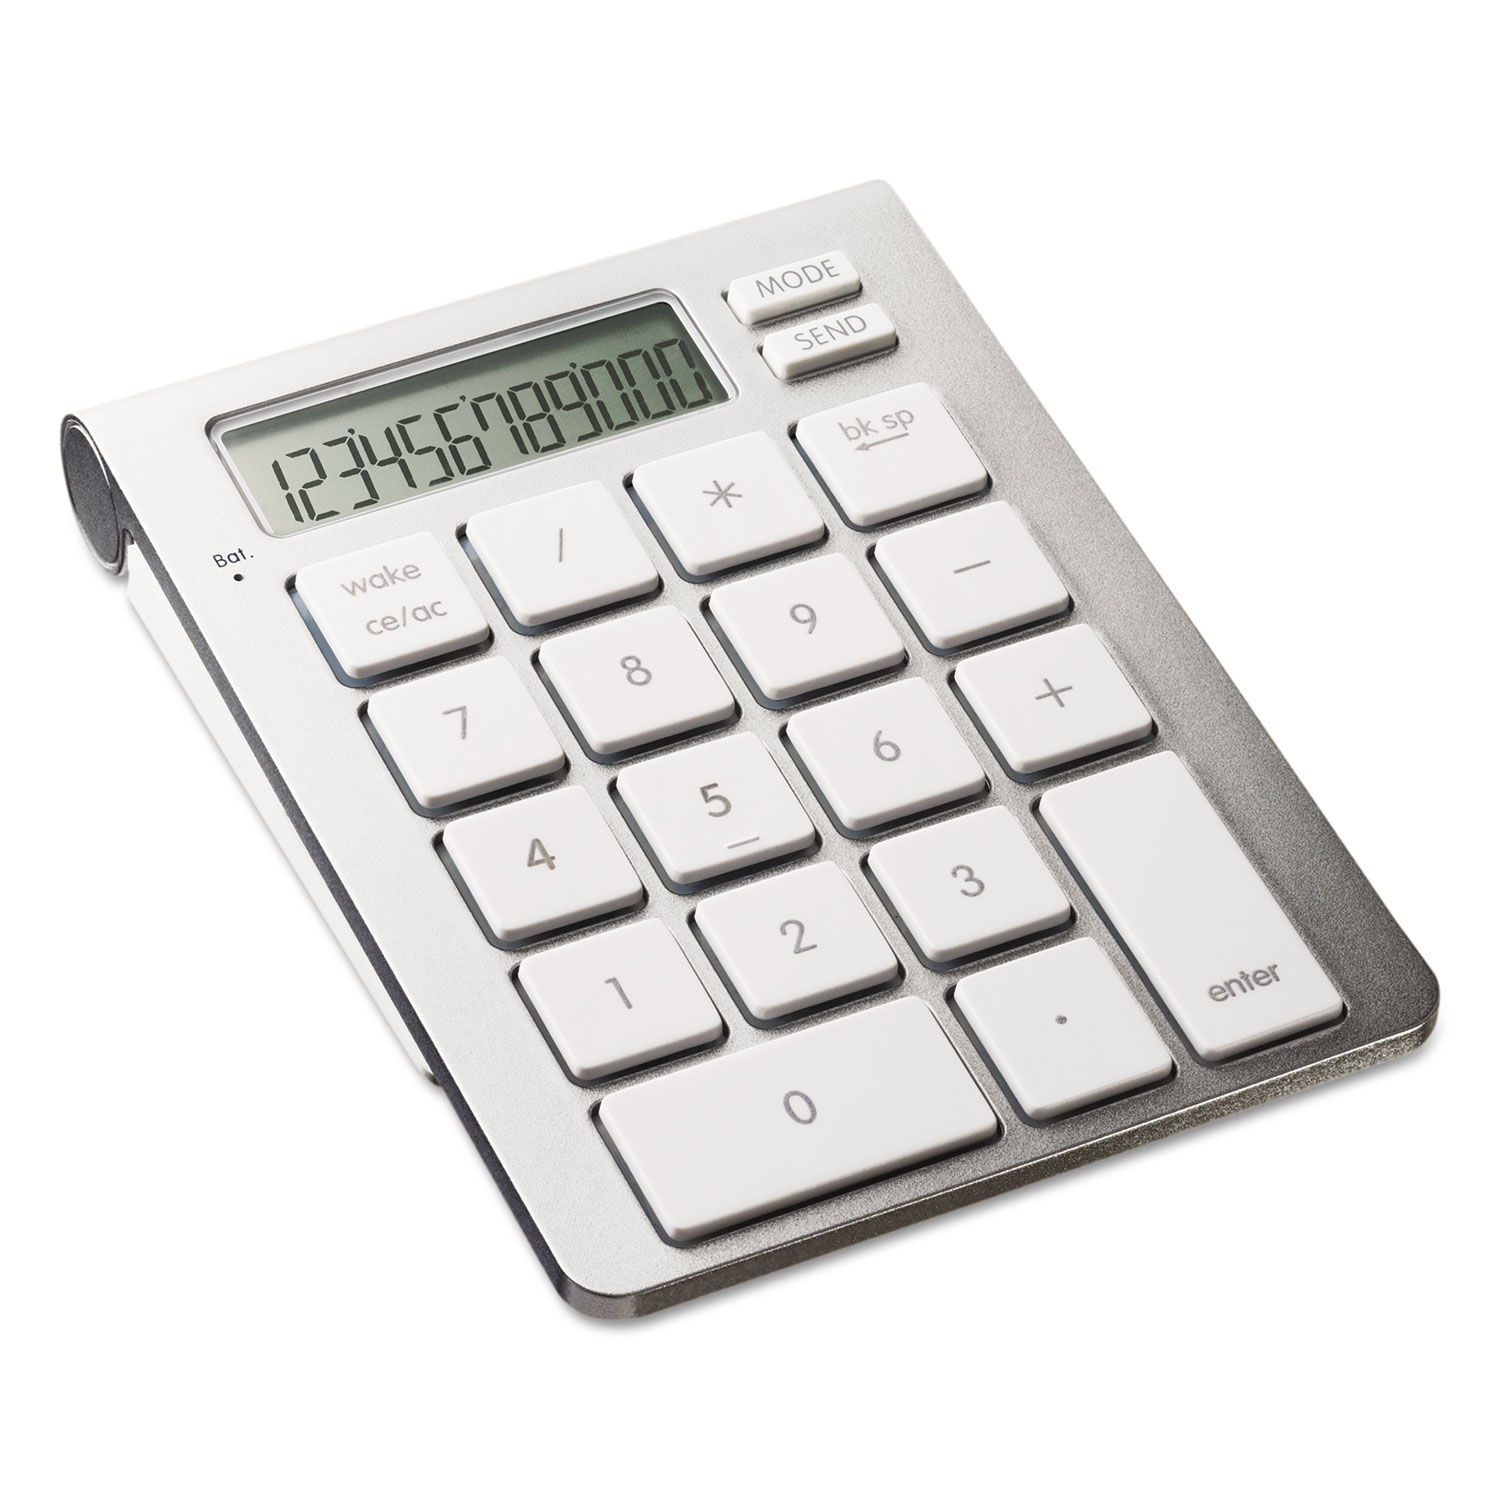 iCalc Bluetooth Calculator Keypad, 12-Digit LCD